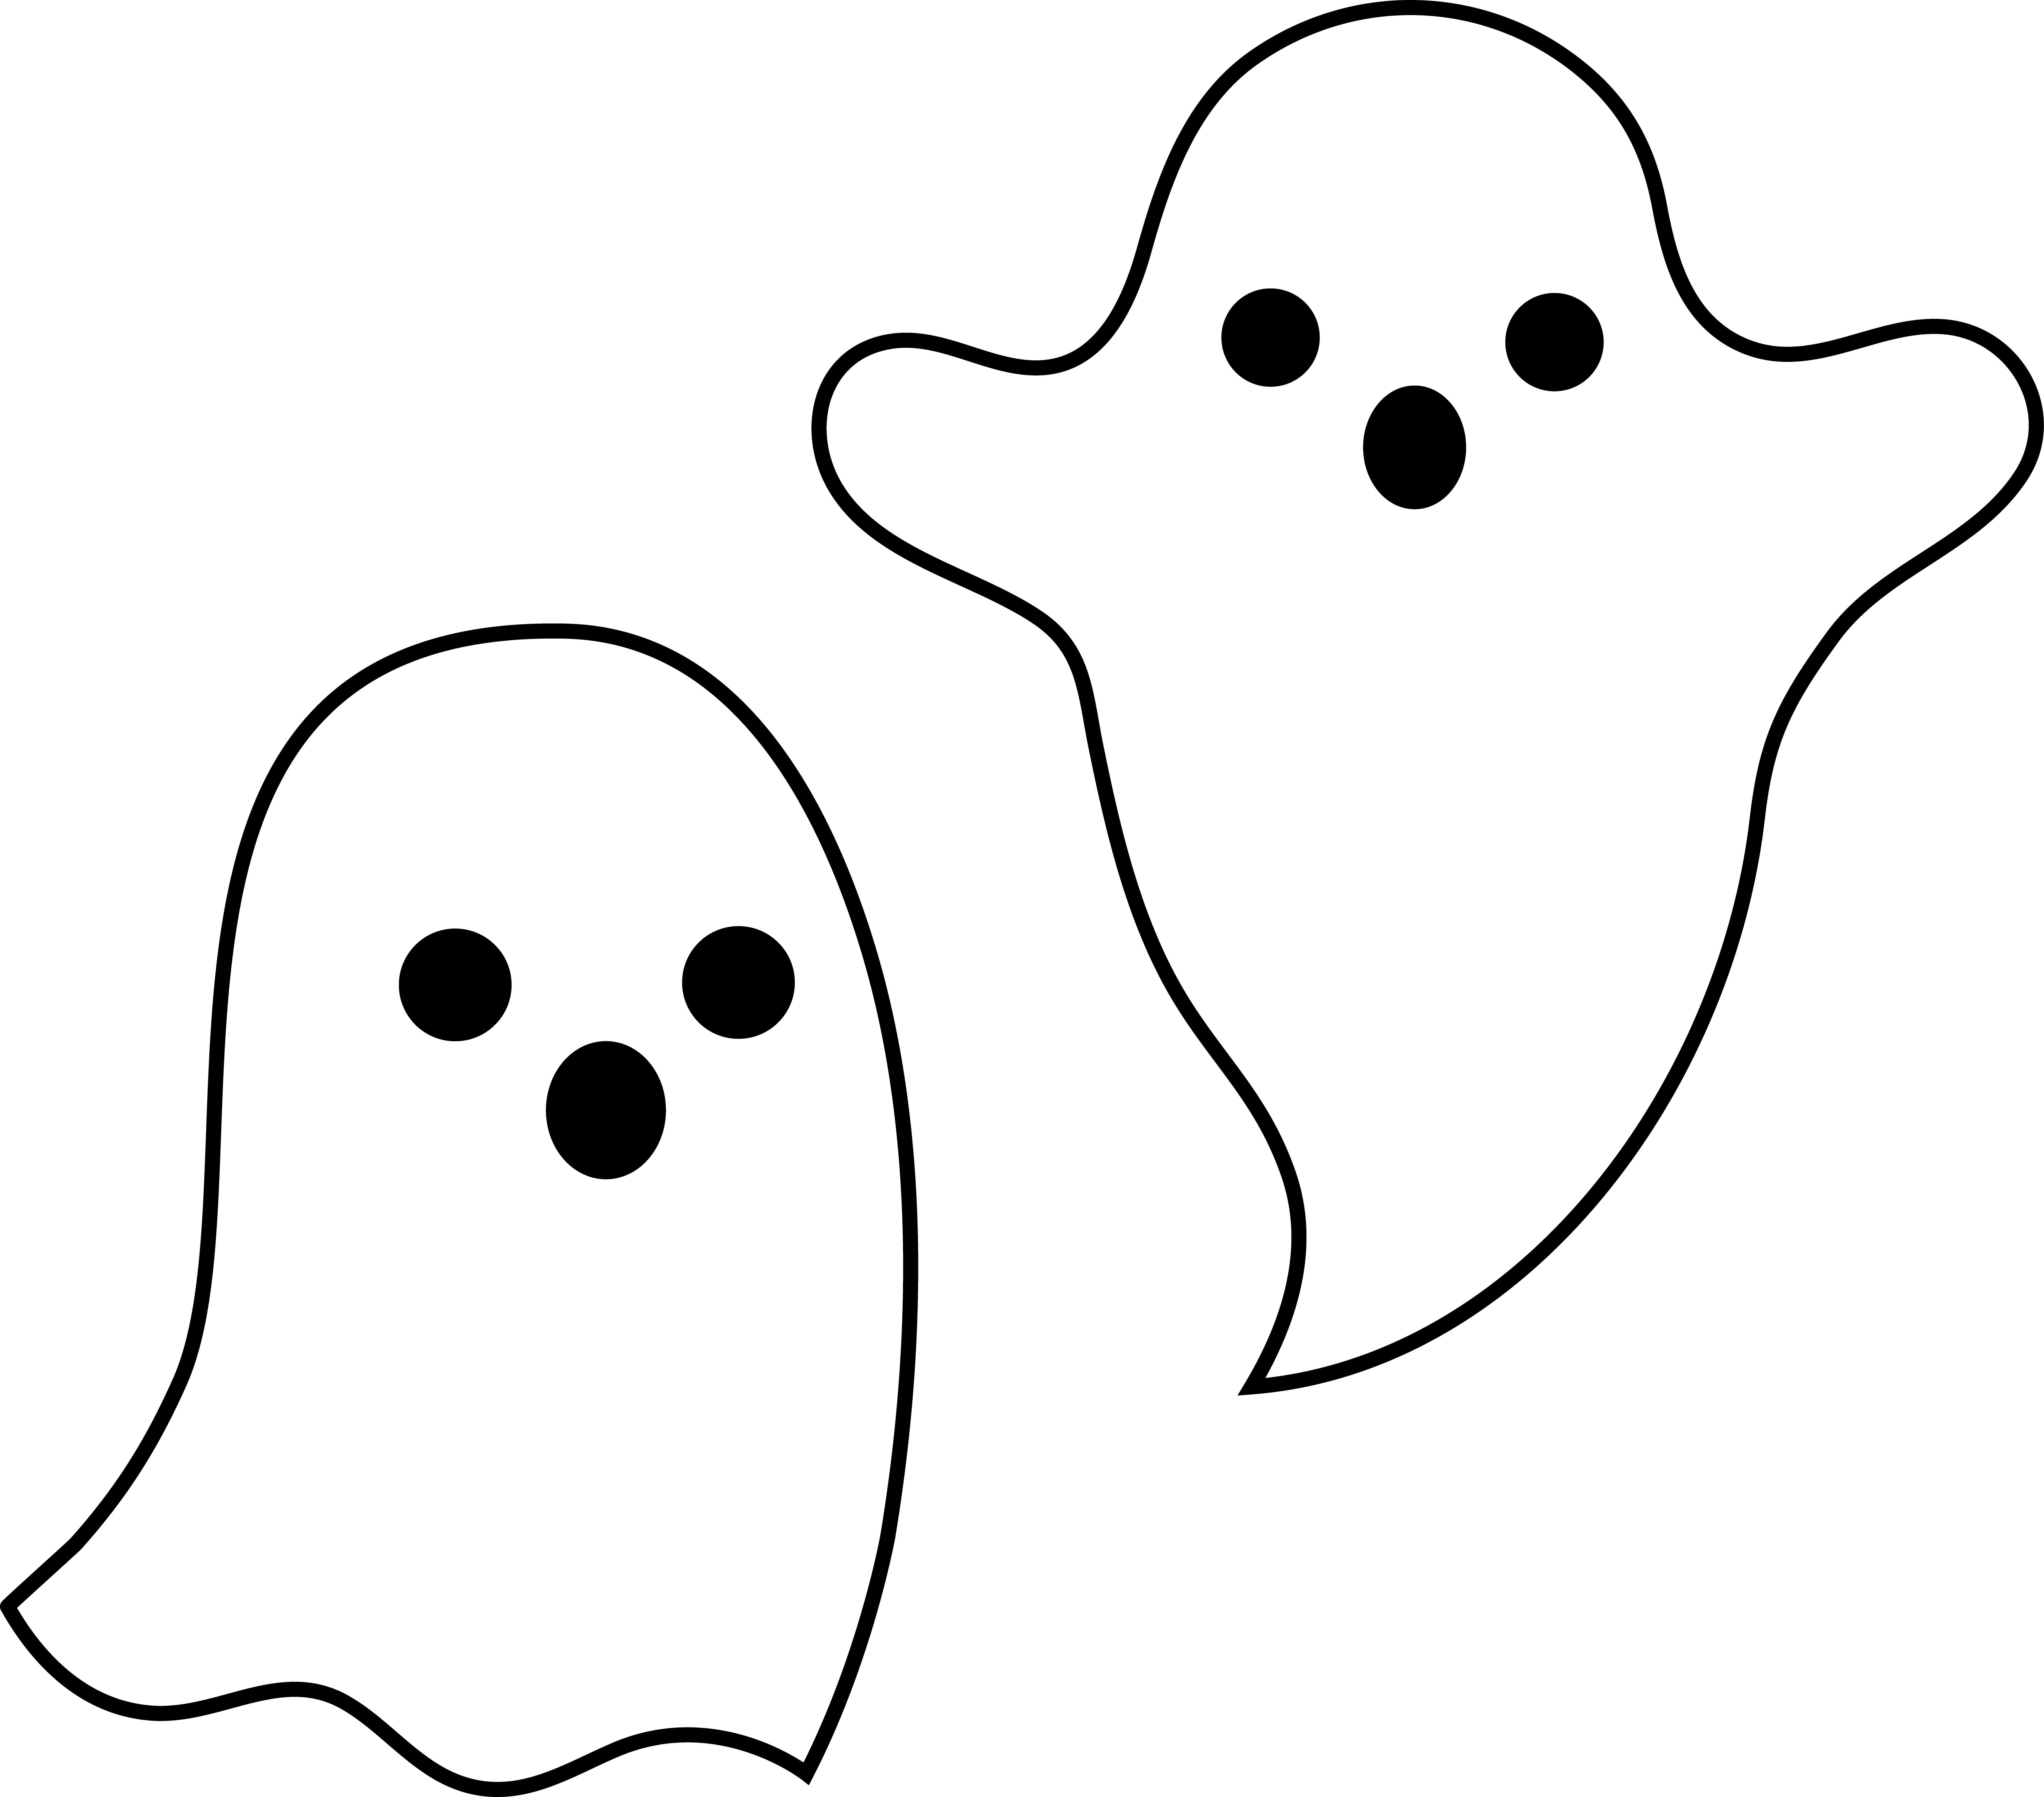 vector freeuse Simple Spooky Halloween Ghosts